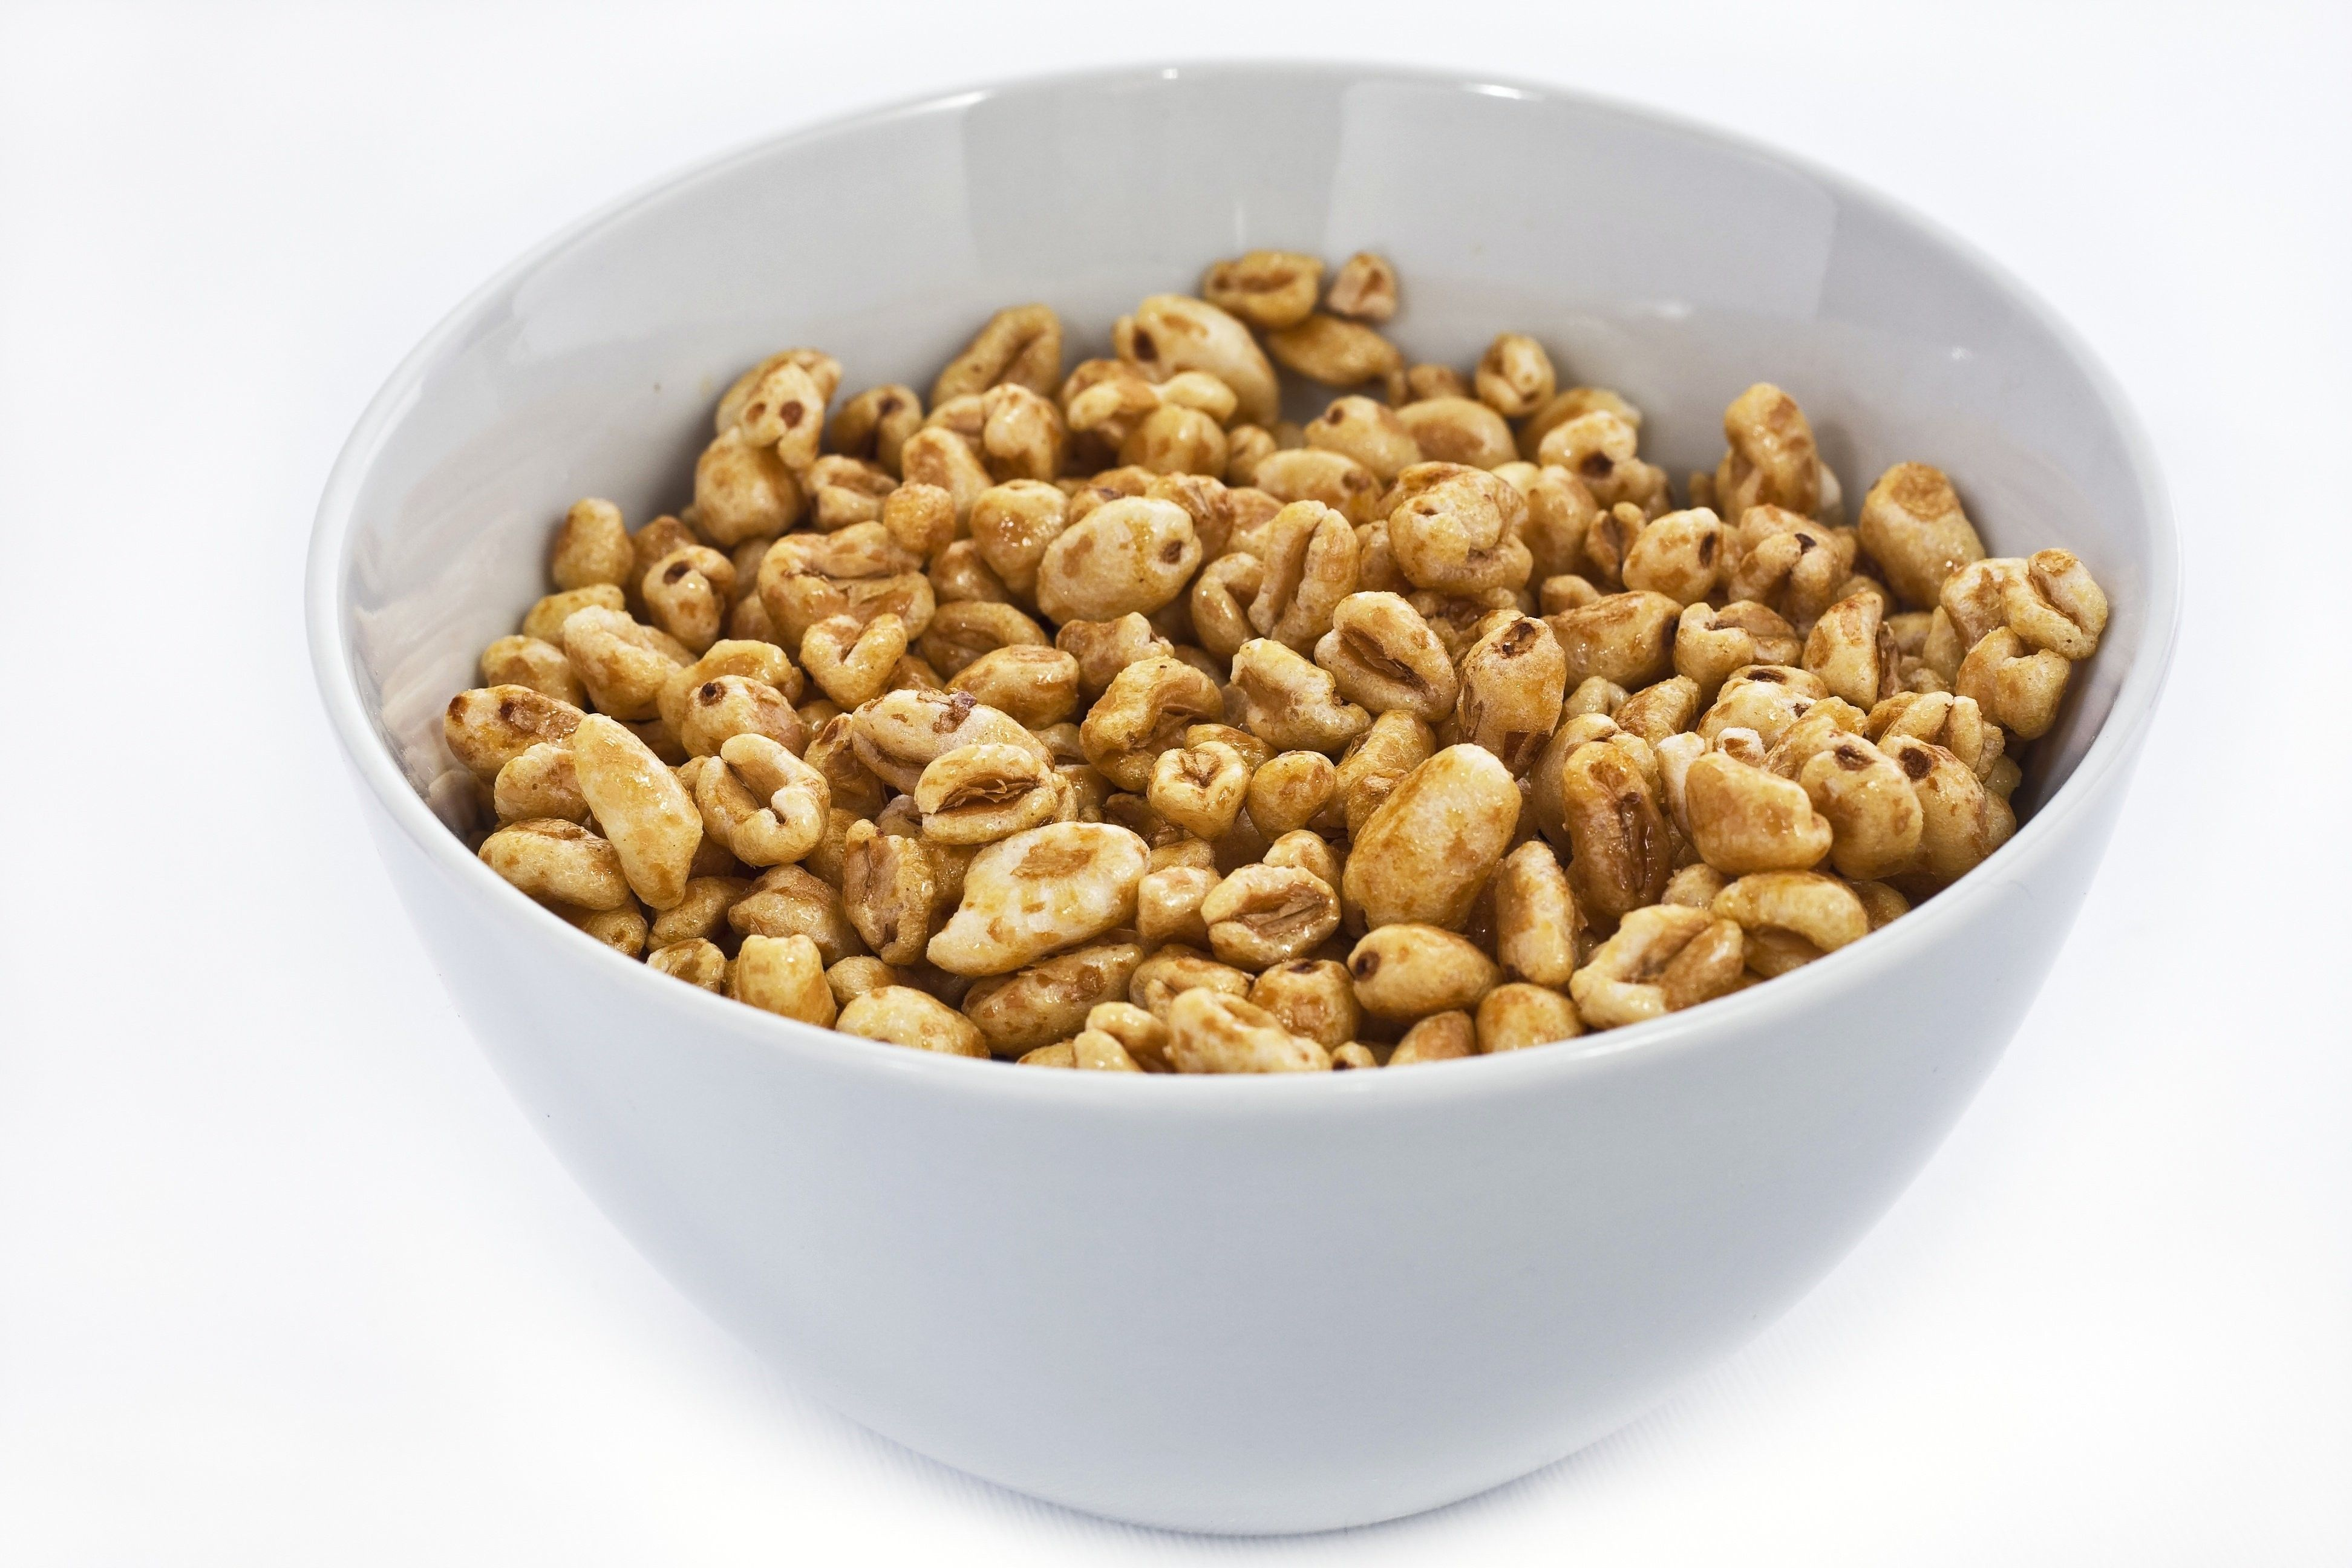 Breakfast Cereals Not Fortified With Iron for